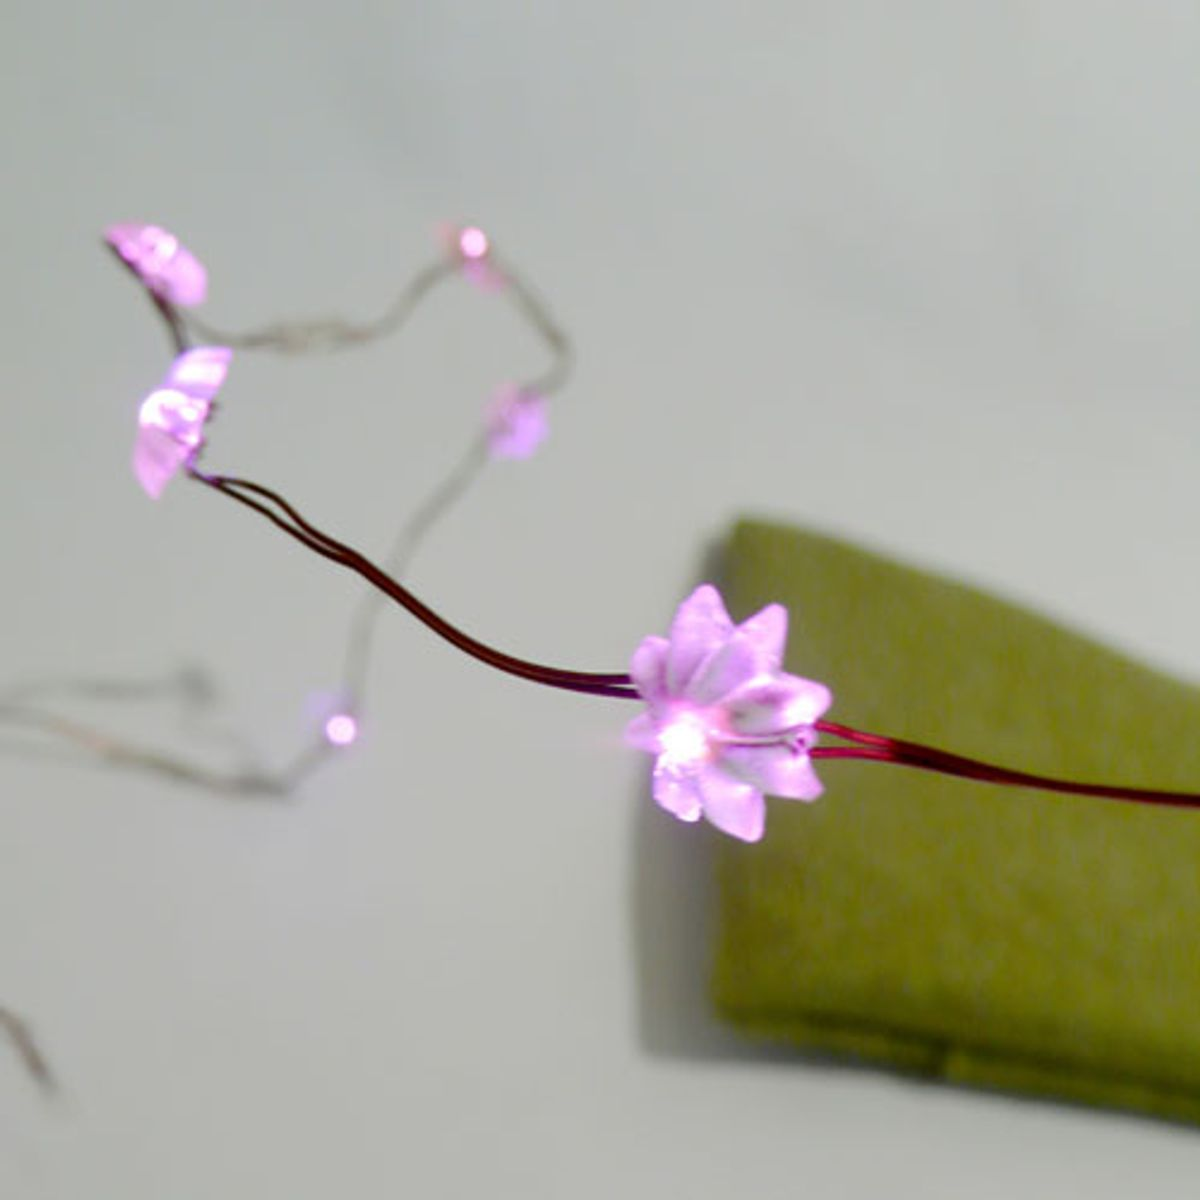 Guirlande de fleurs Minlight 20 leds centre de table PA Design